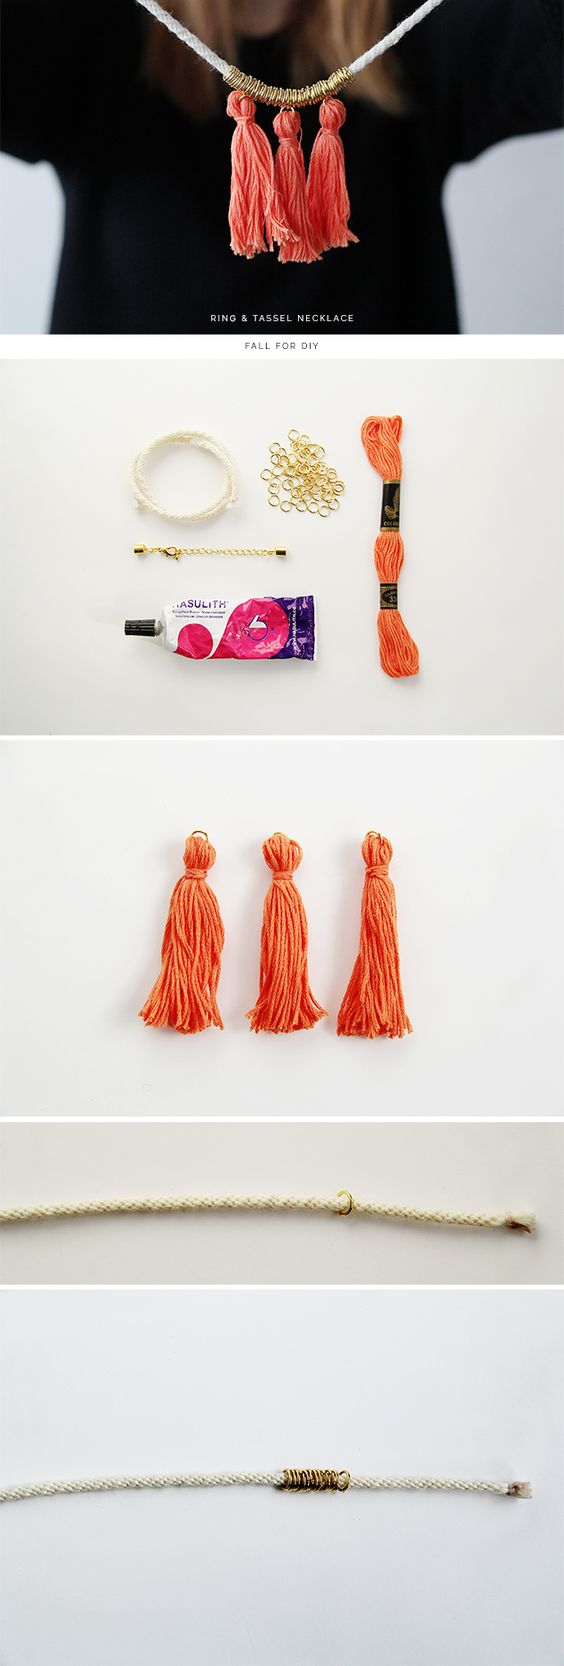 Fall For DIY Cord and Tassel Necklace tutorial via @Francesca Galafti Stone